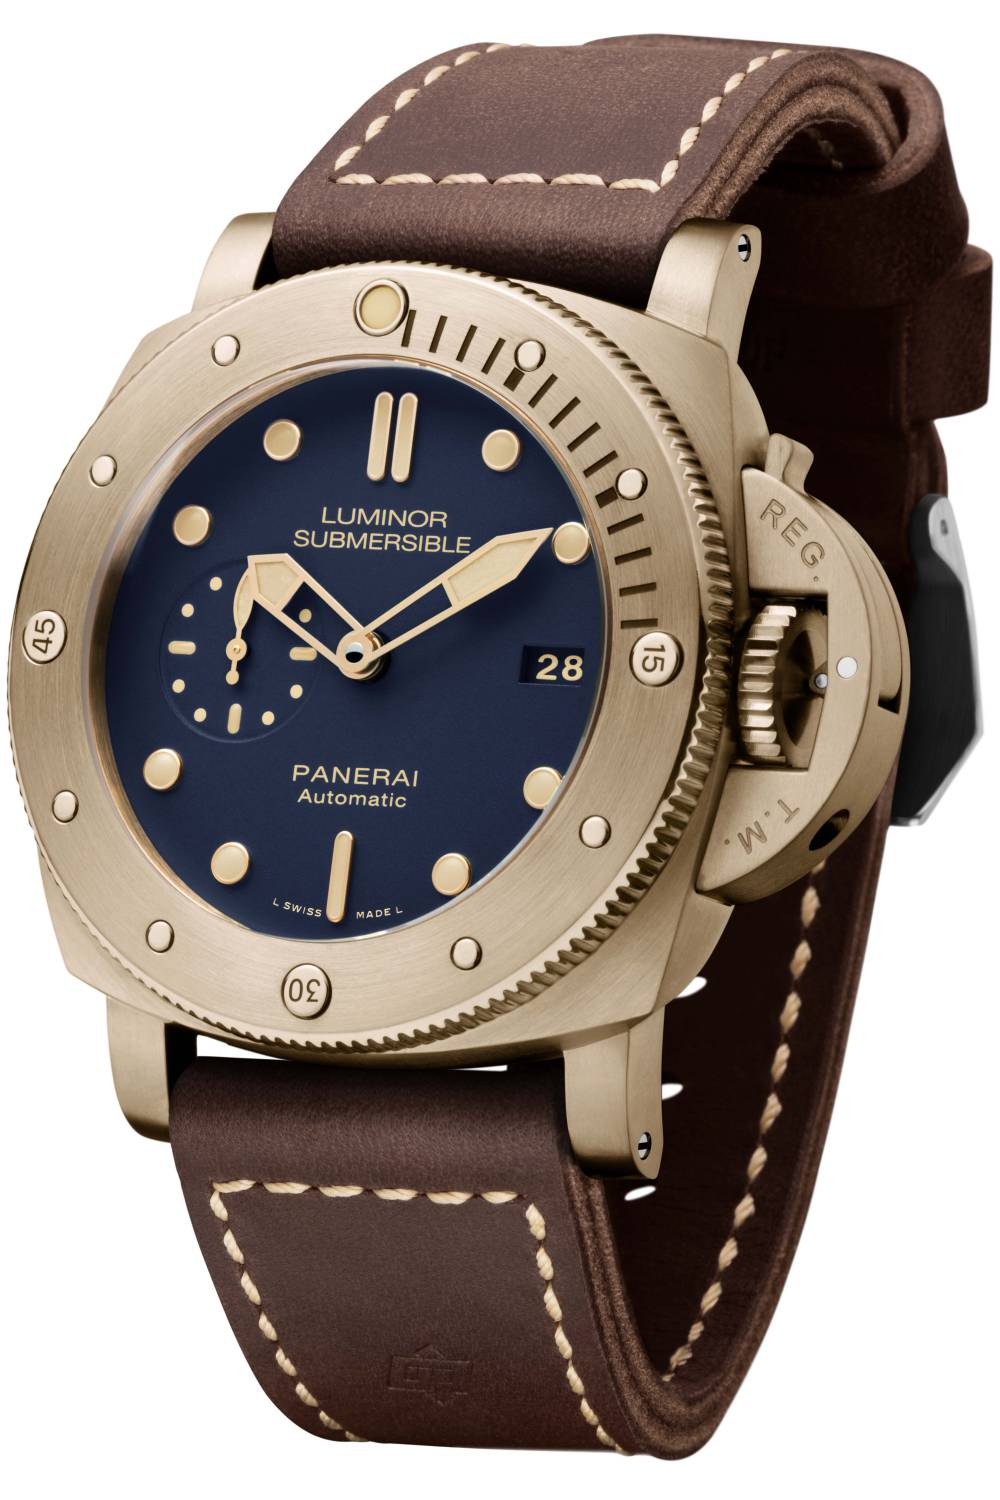 Panerai-Luminor-Submersible-Bronzo-Blue-PAM00671-1.jpg